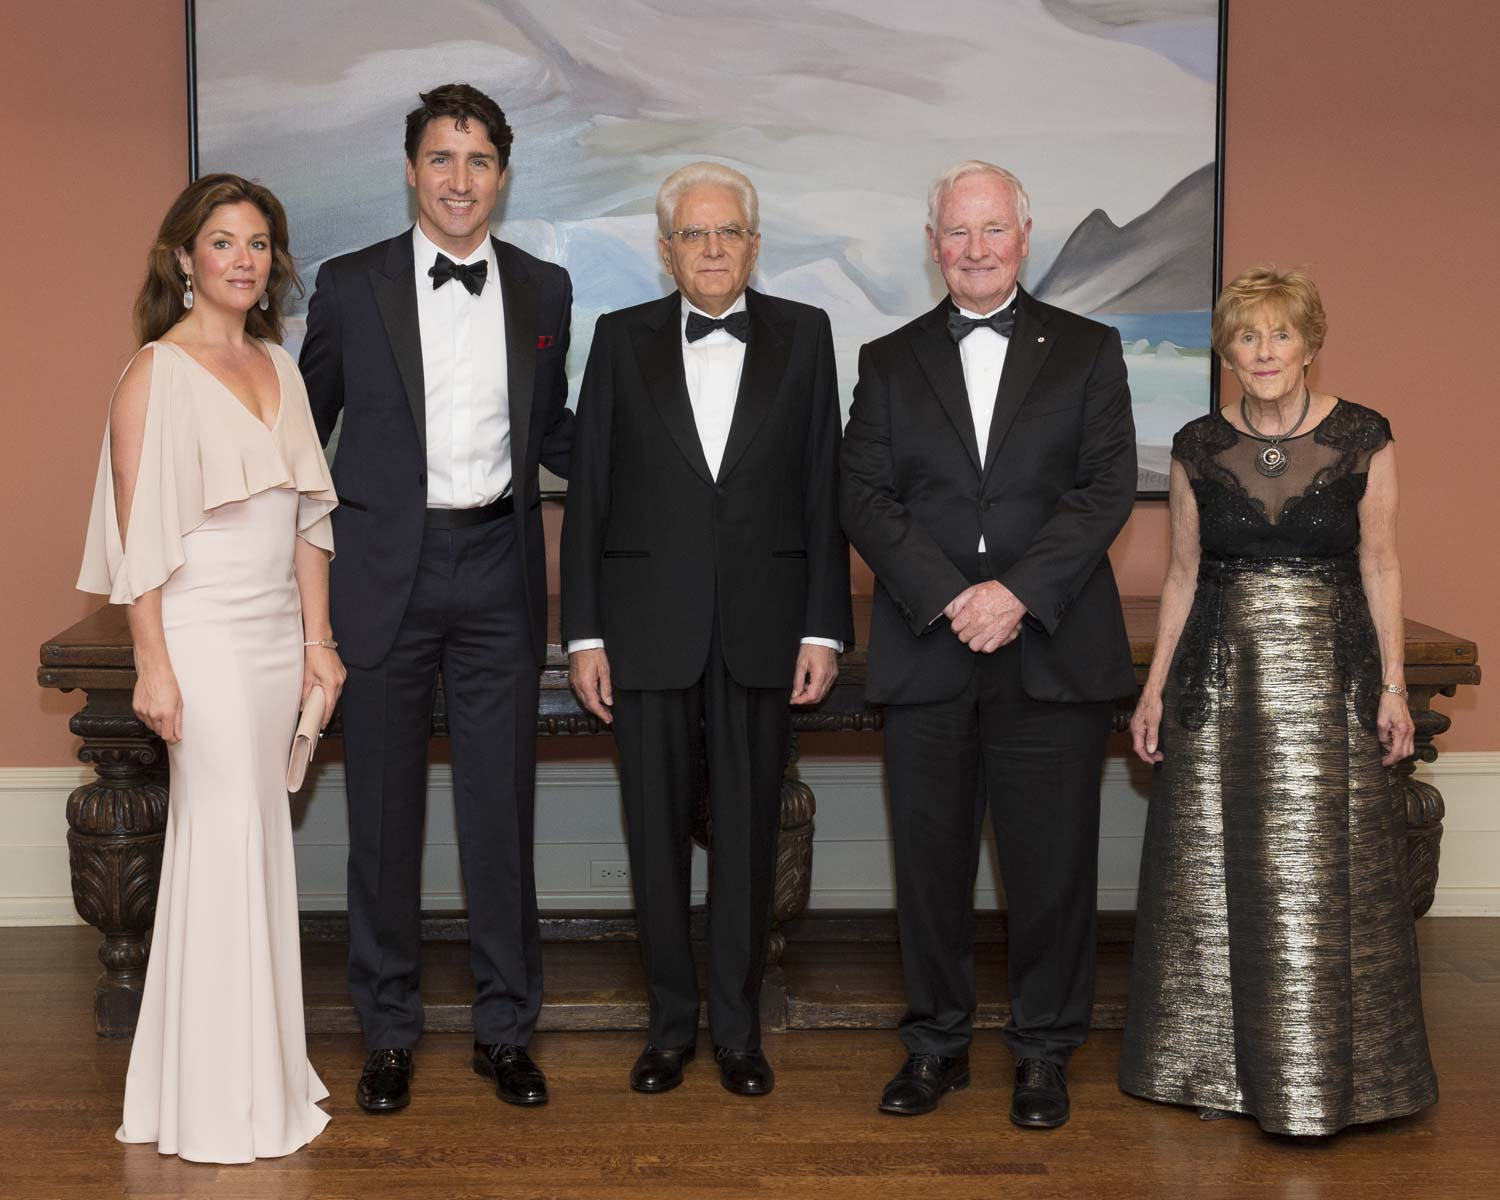 In the evening, the Governor General and Mrs. Sharon Johnston hosted a State dinner in honour of the President's visit to Canada. They were joined by Mrs. Sophie Grégoire Trudeau (far left), the Right Honourable Justin Trudeau, Prime Minister of Canada, and other distinguished guests.